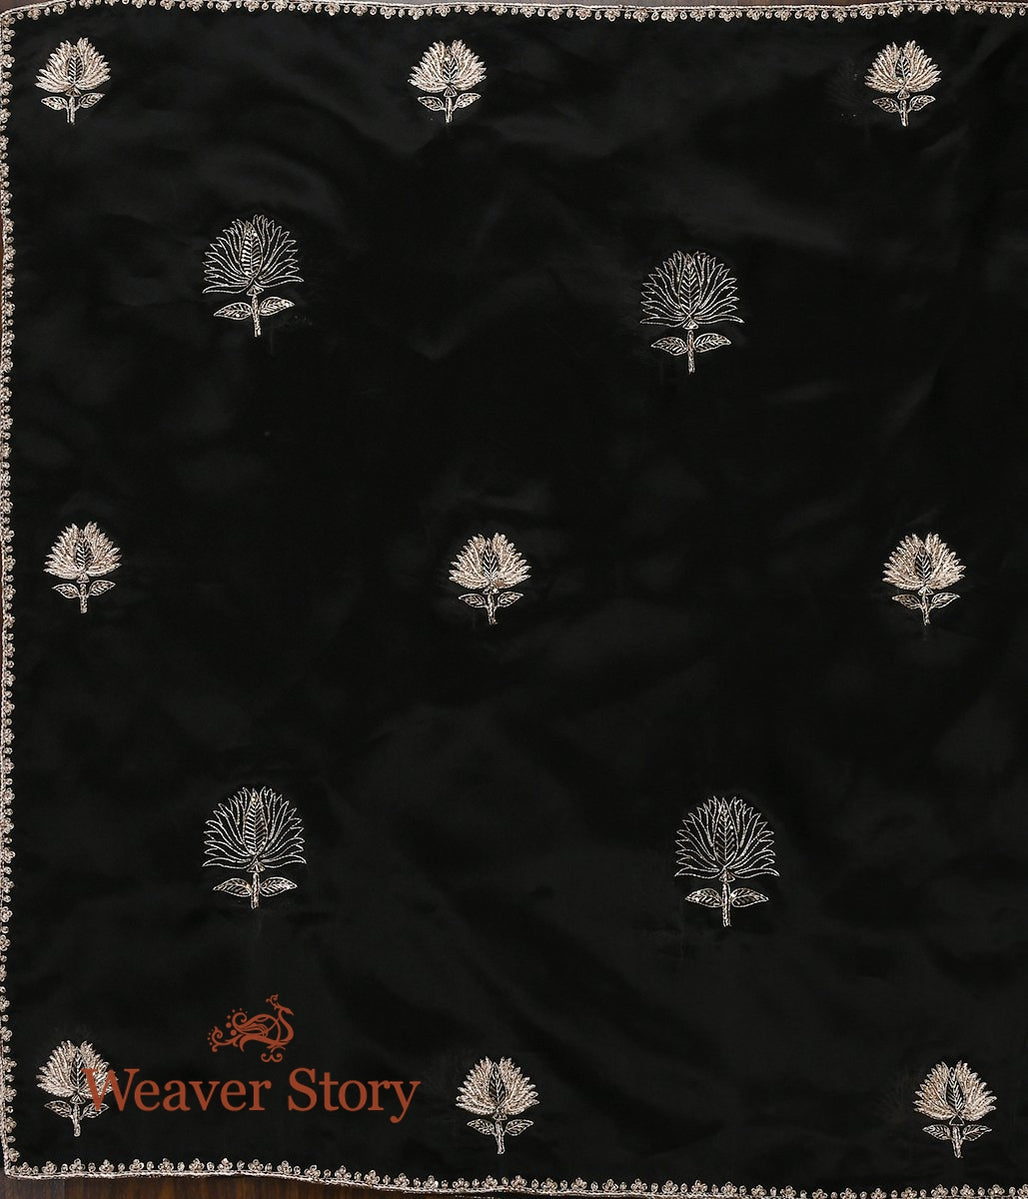 Black Zardozi Organza Dupatta with Lotus Flower Motifs